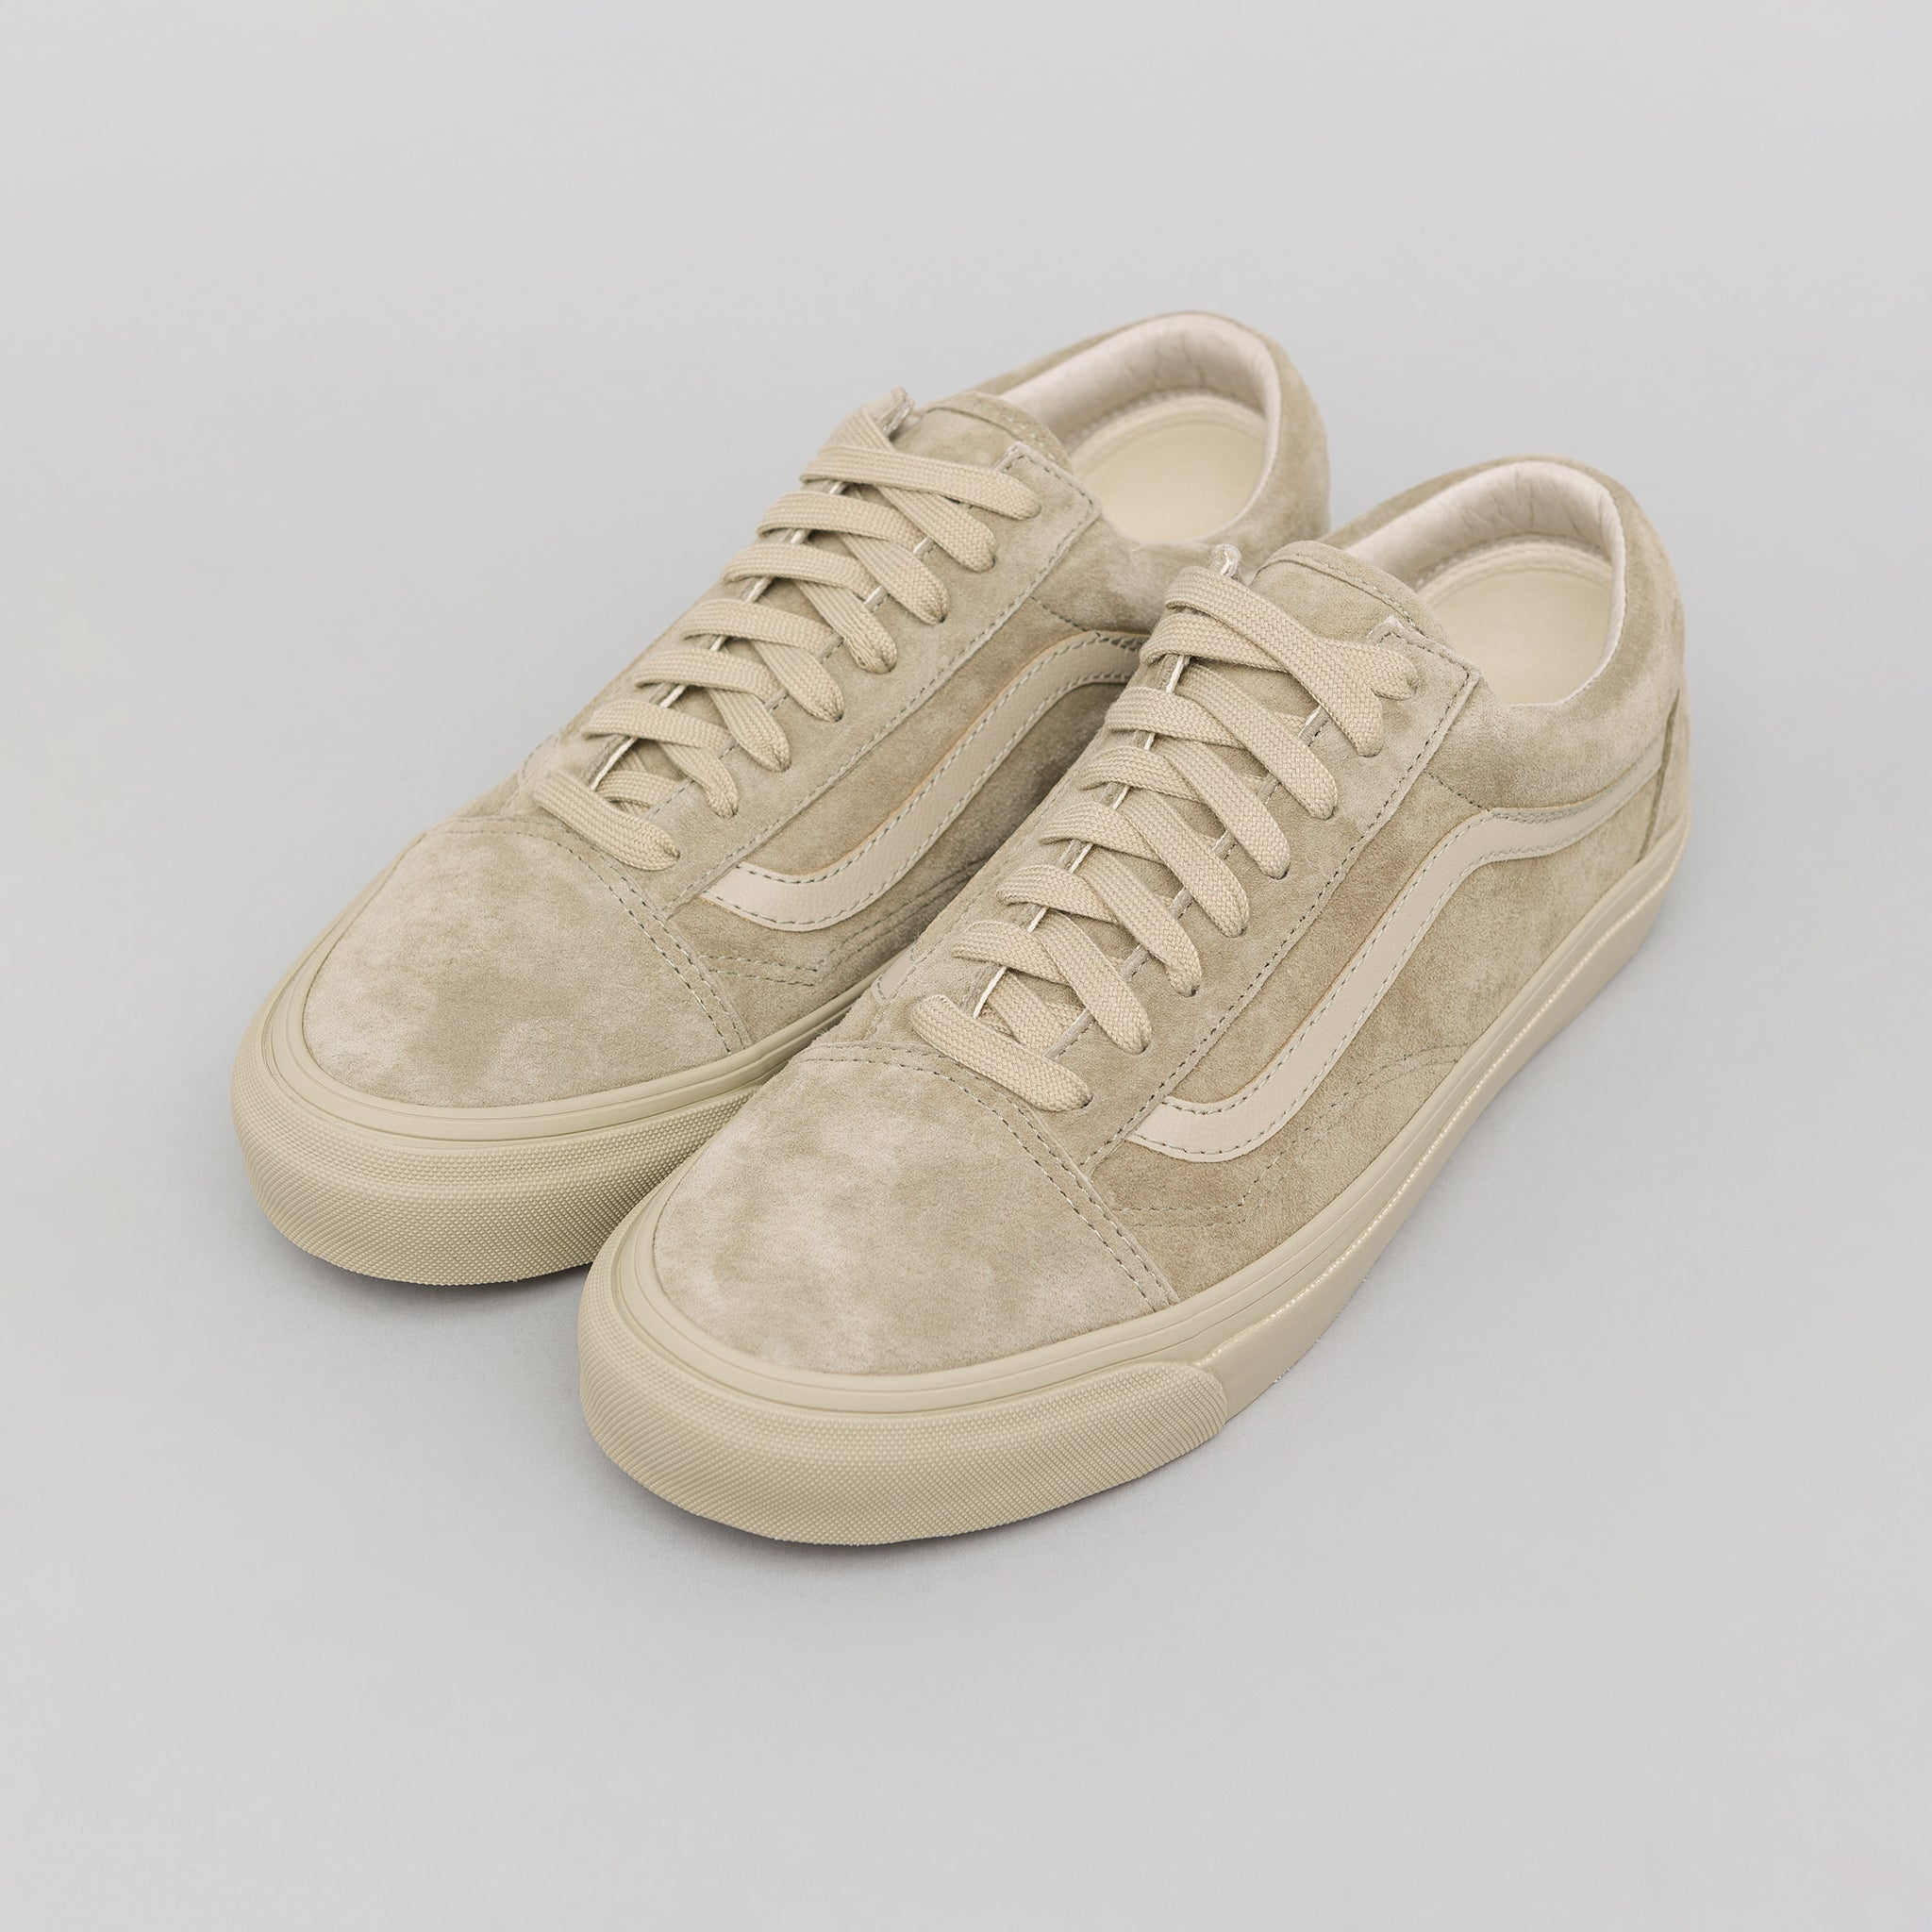 76ba1cfb3a5a0e Vans Vault Old Skool LX Leather Suede in Taupe